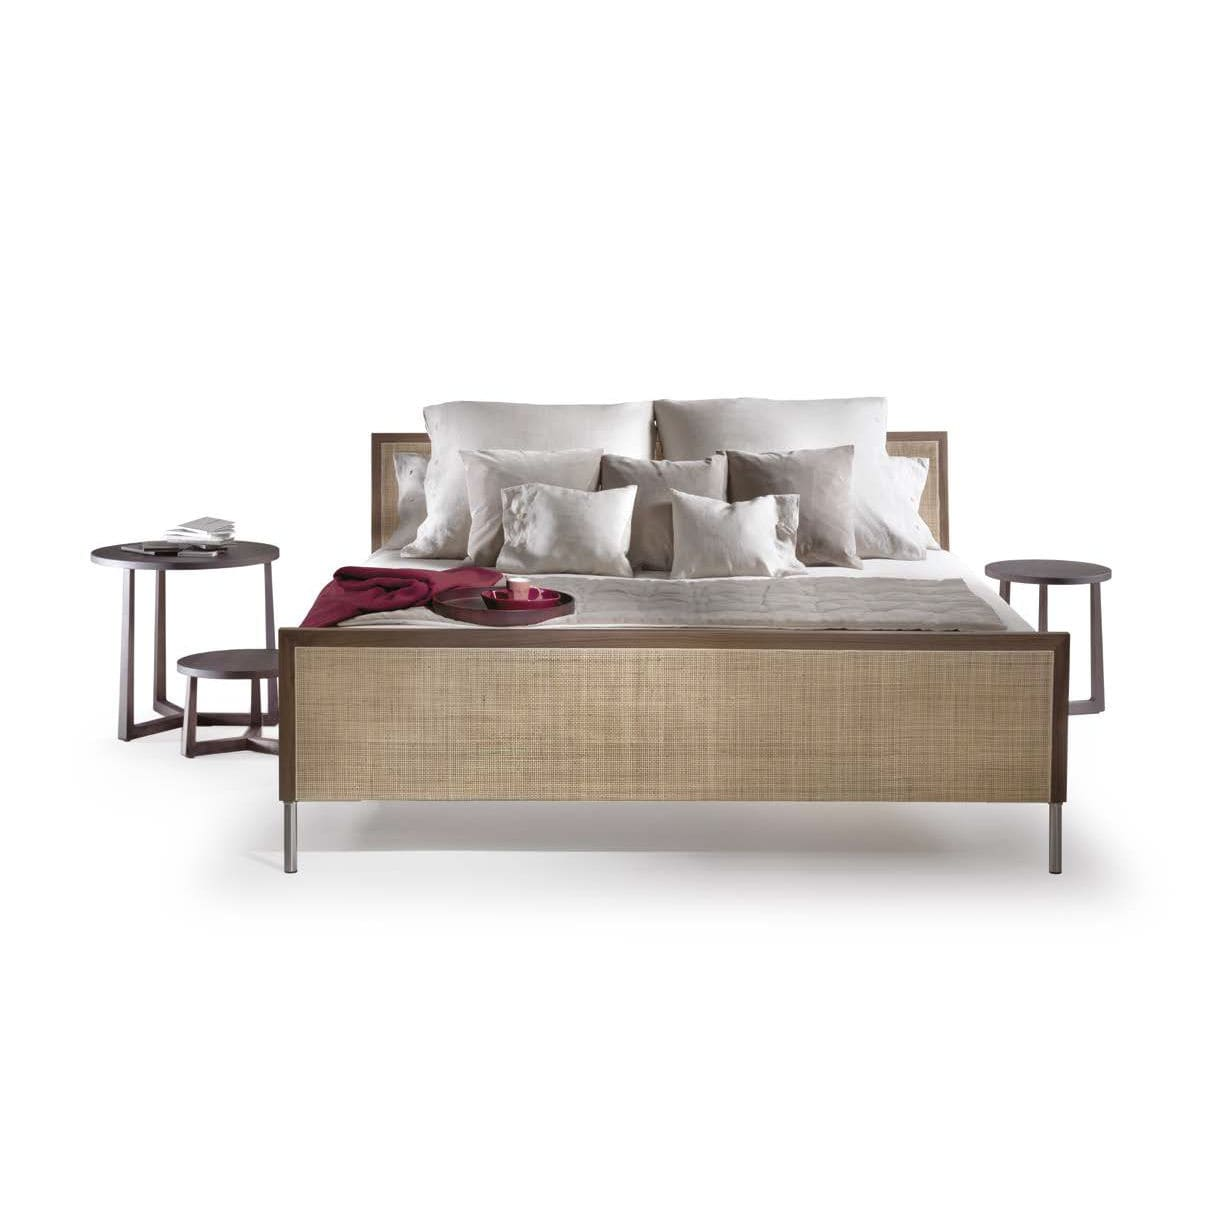 Double Bed Contemporary With Headboard Wooden Piano By Asnago Vender